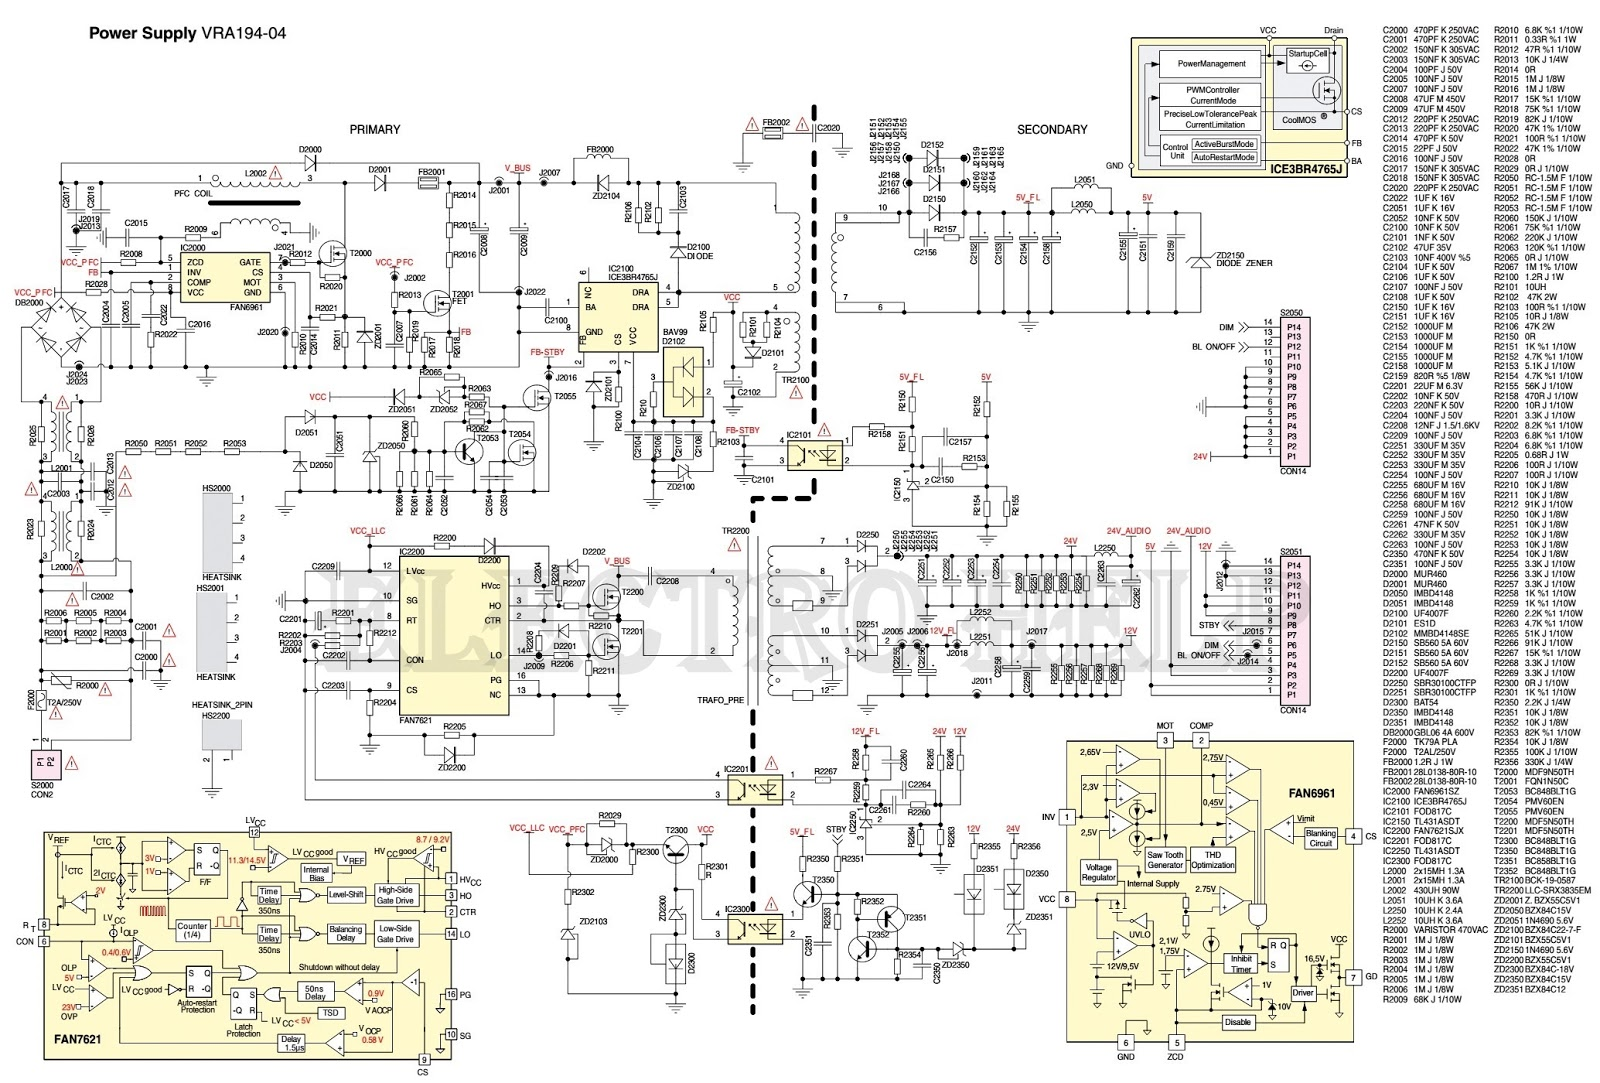 Remarkable Philips Tv Wiring Diagram Wiring Library Wiring Cloud Loplapiotaidewilluminateatxorg